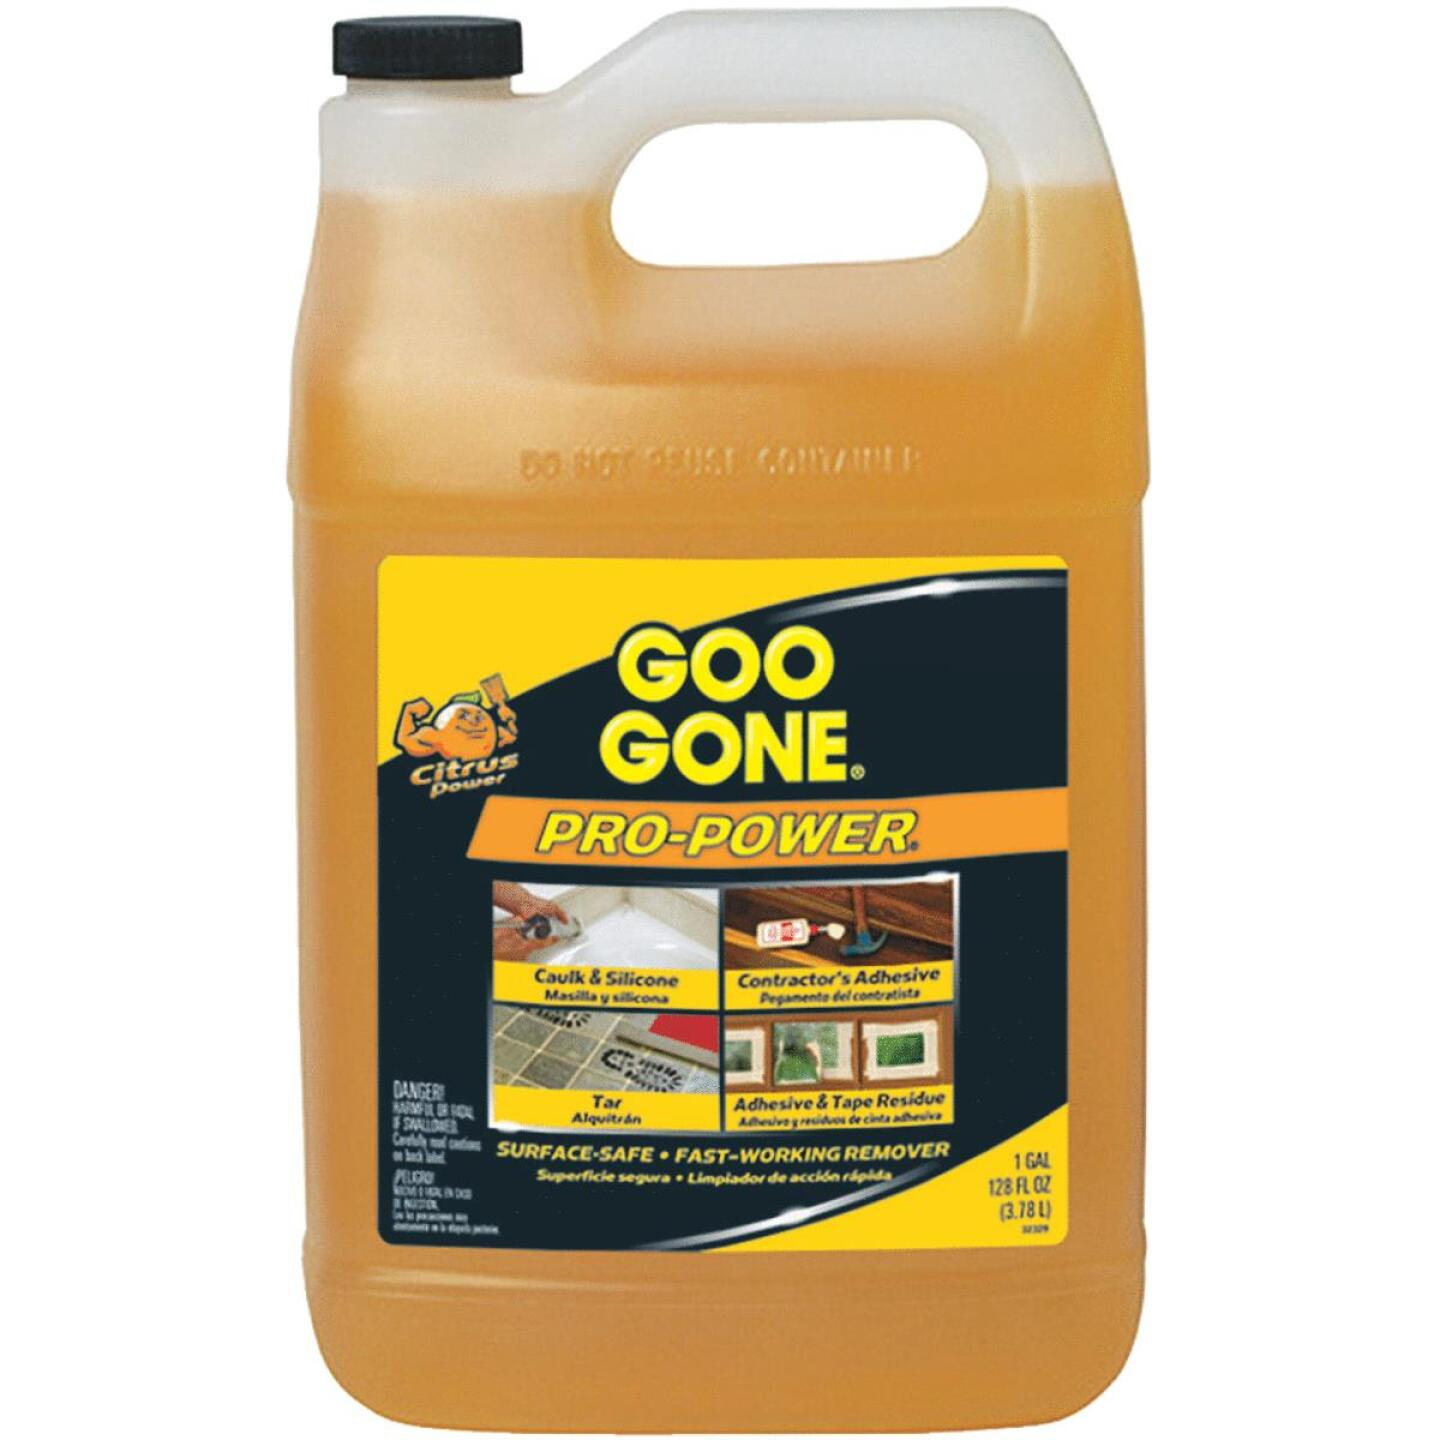 Goo Gone 1 Gal. Pro-Power Adhesive Remover Image 180